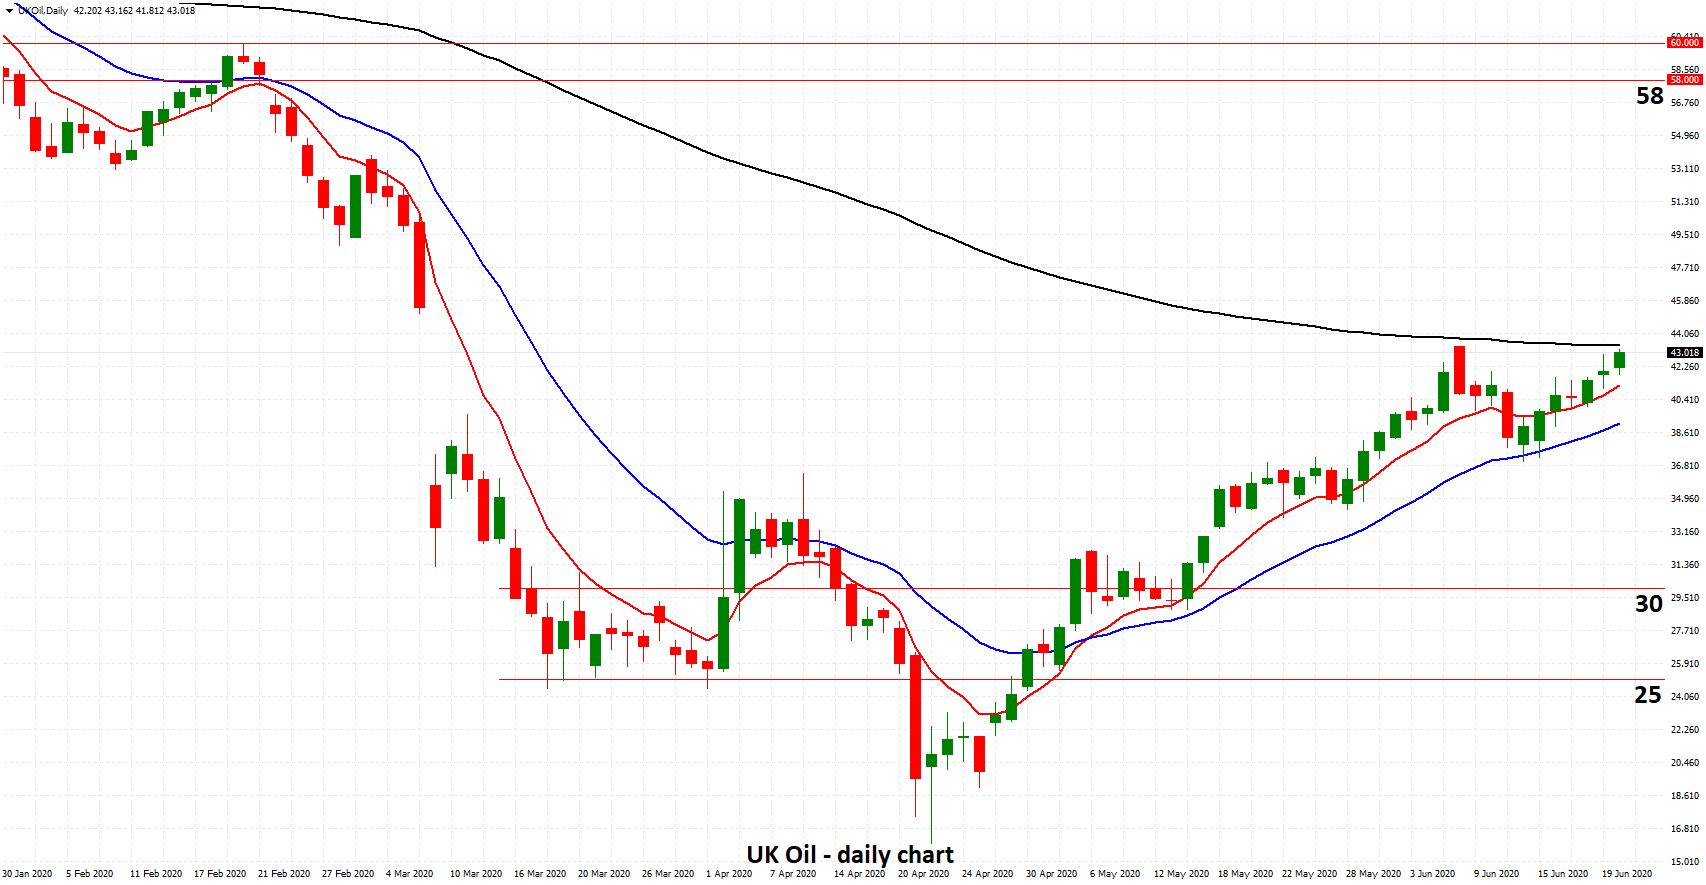 UK Oil - Moves Towards Three Month High Above 43 as Lockdowns Eases